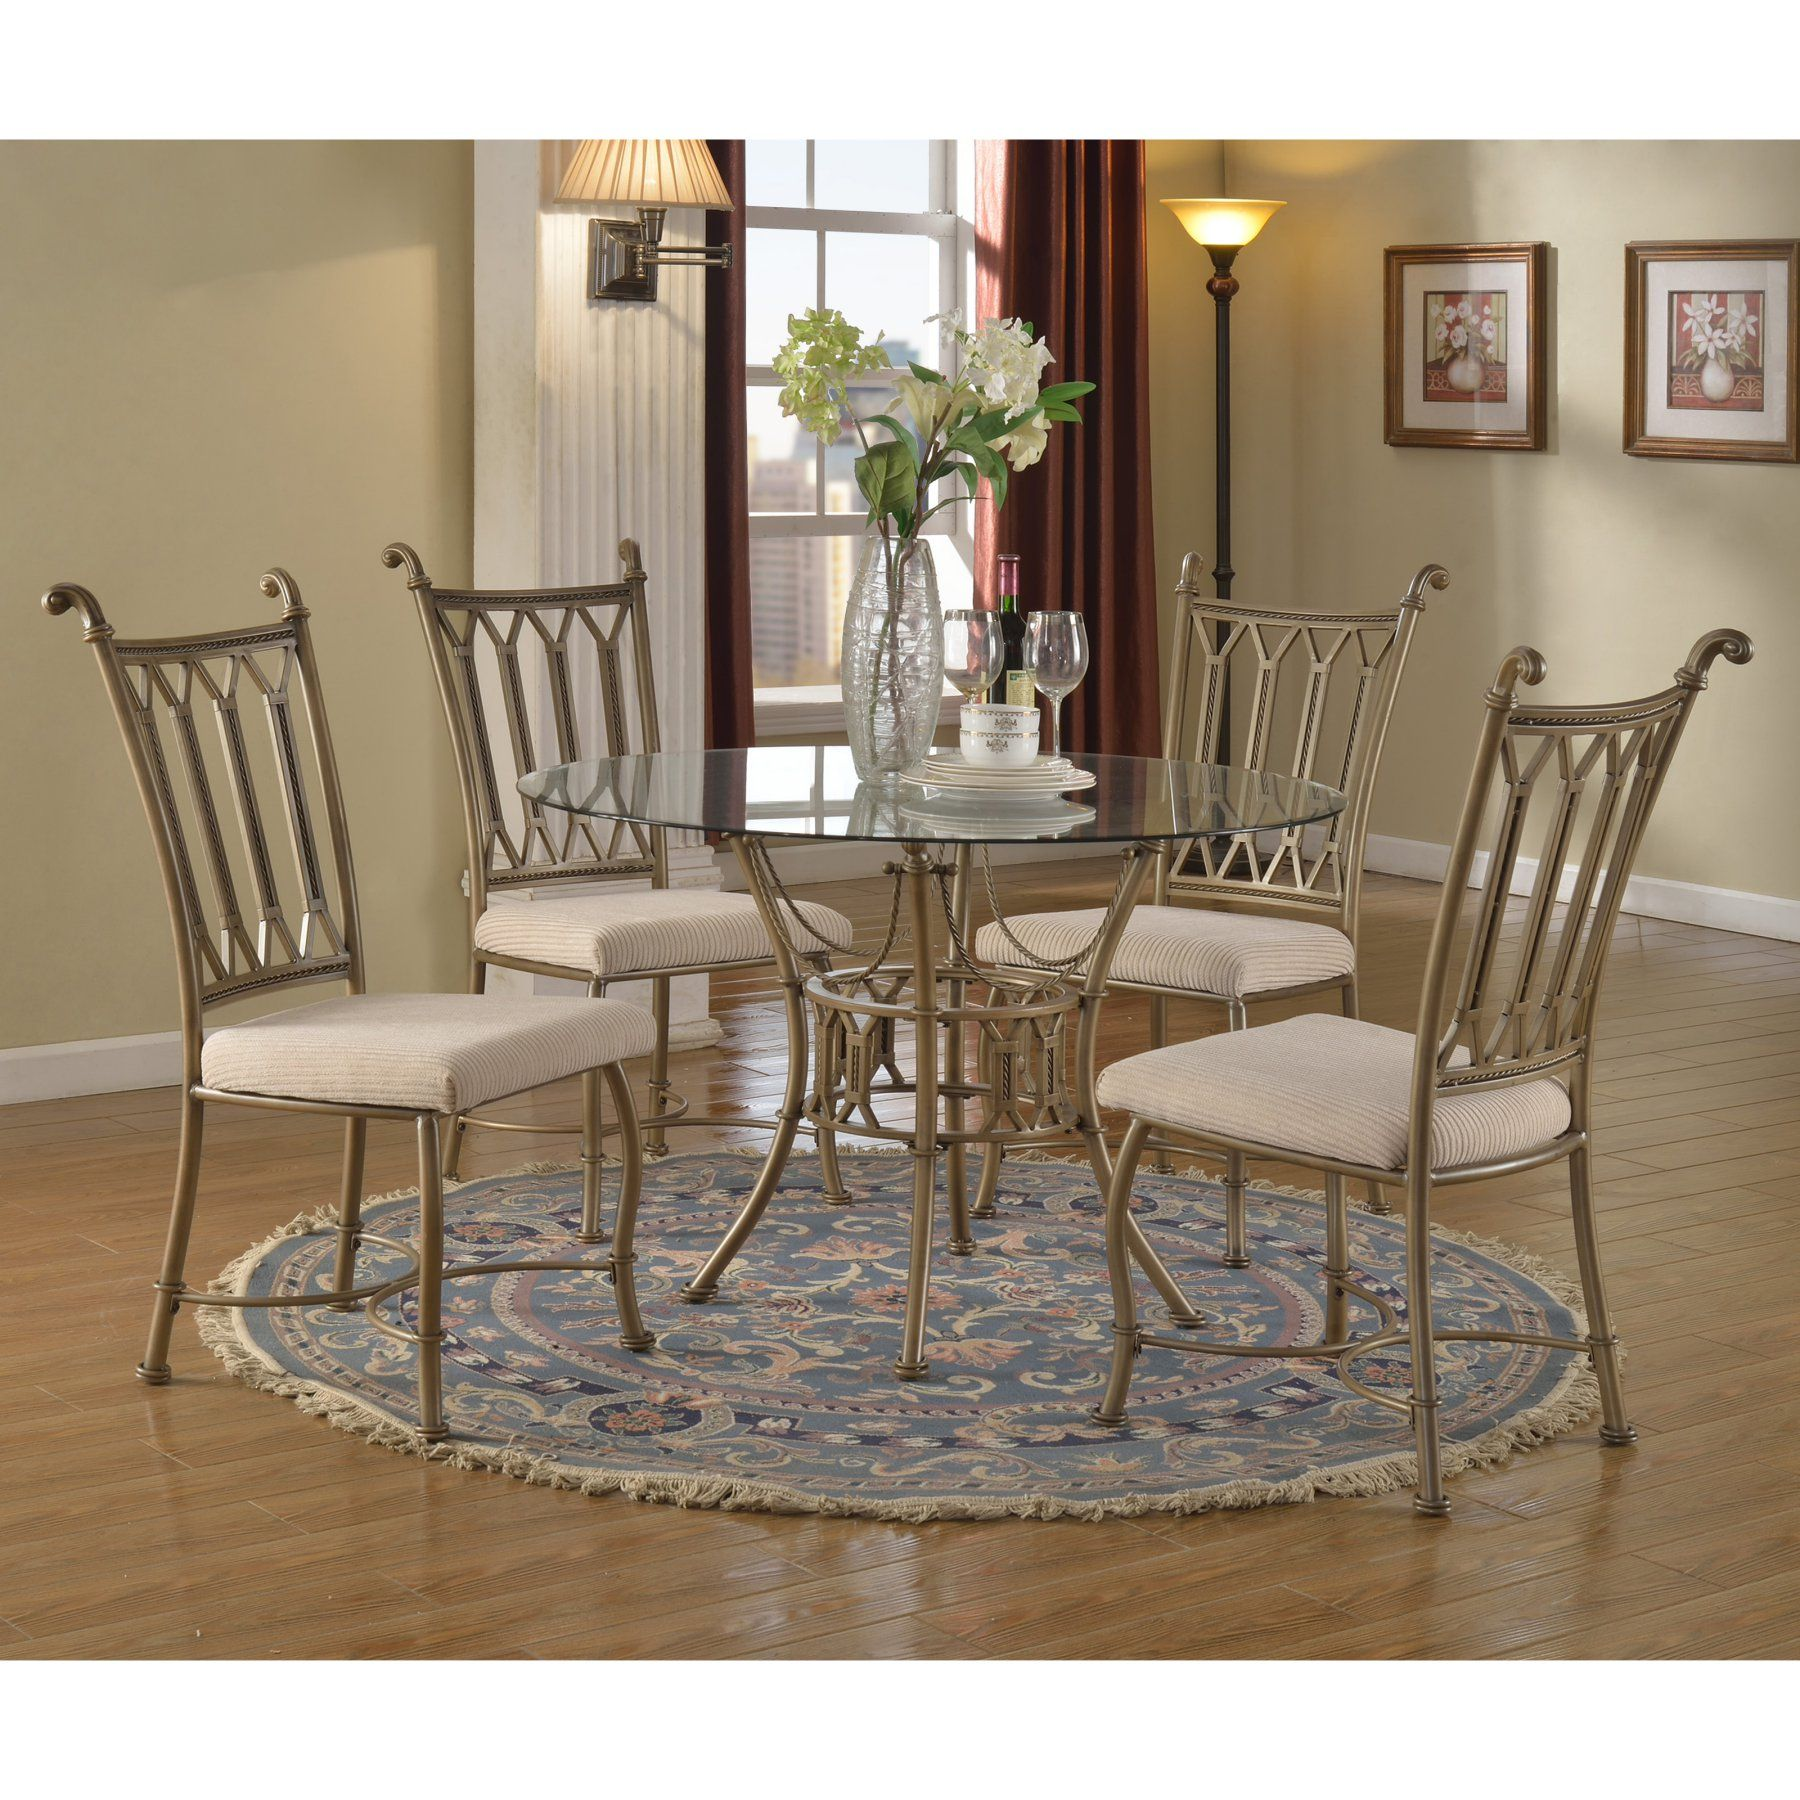 Chintaly darcy piece round dining table set cty round